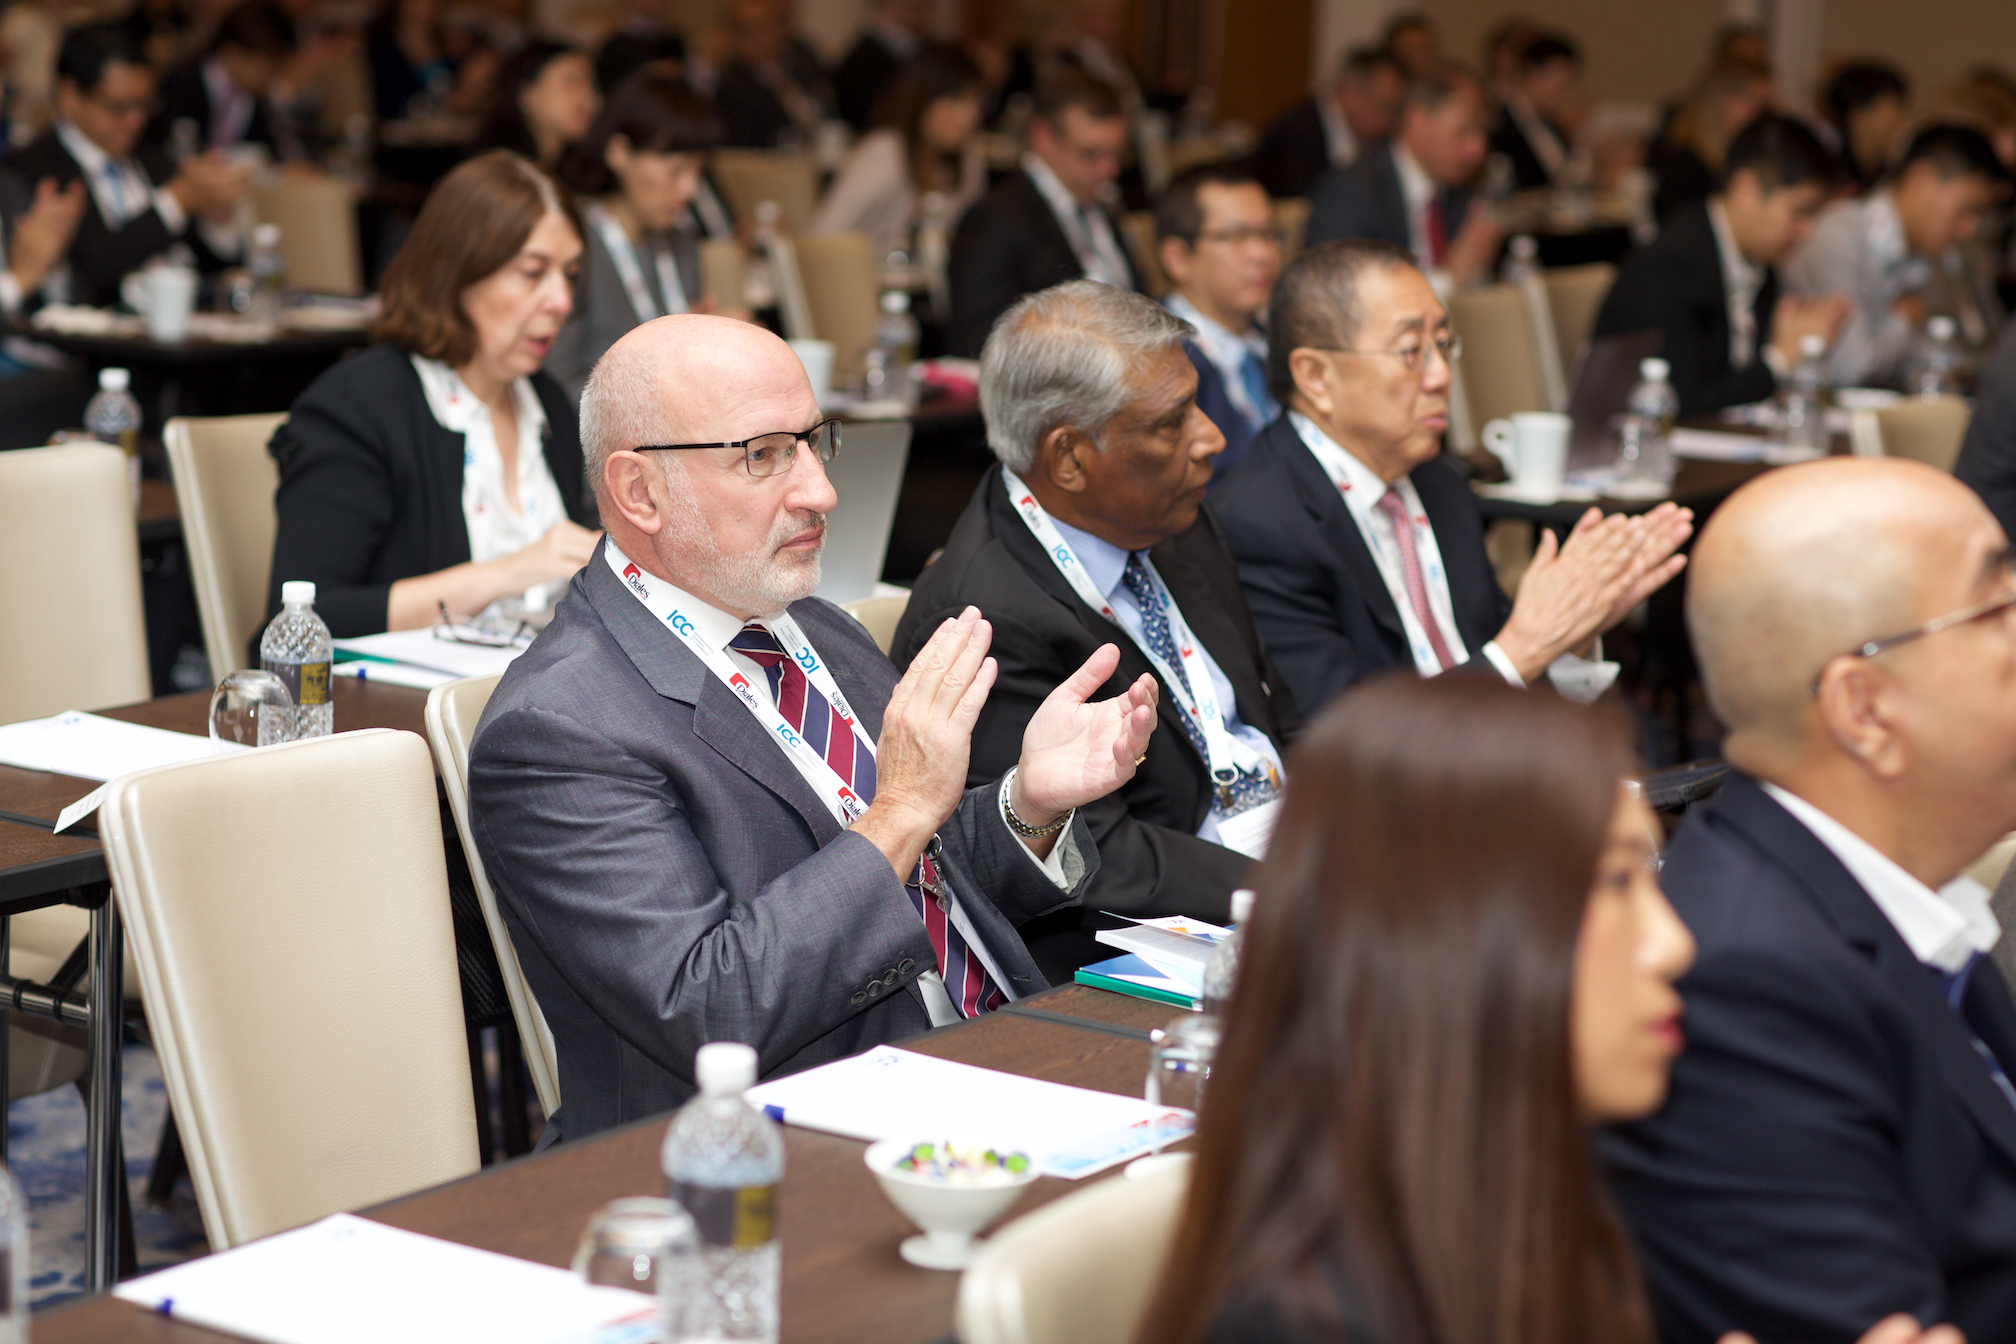 3rd-icc-asia-conference-on-international-arbitration_34774752303_o.jpg